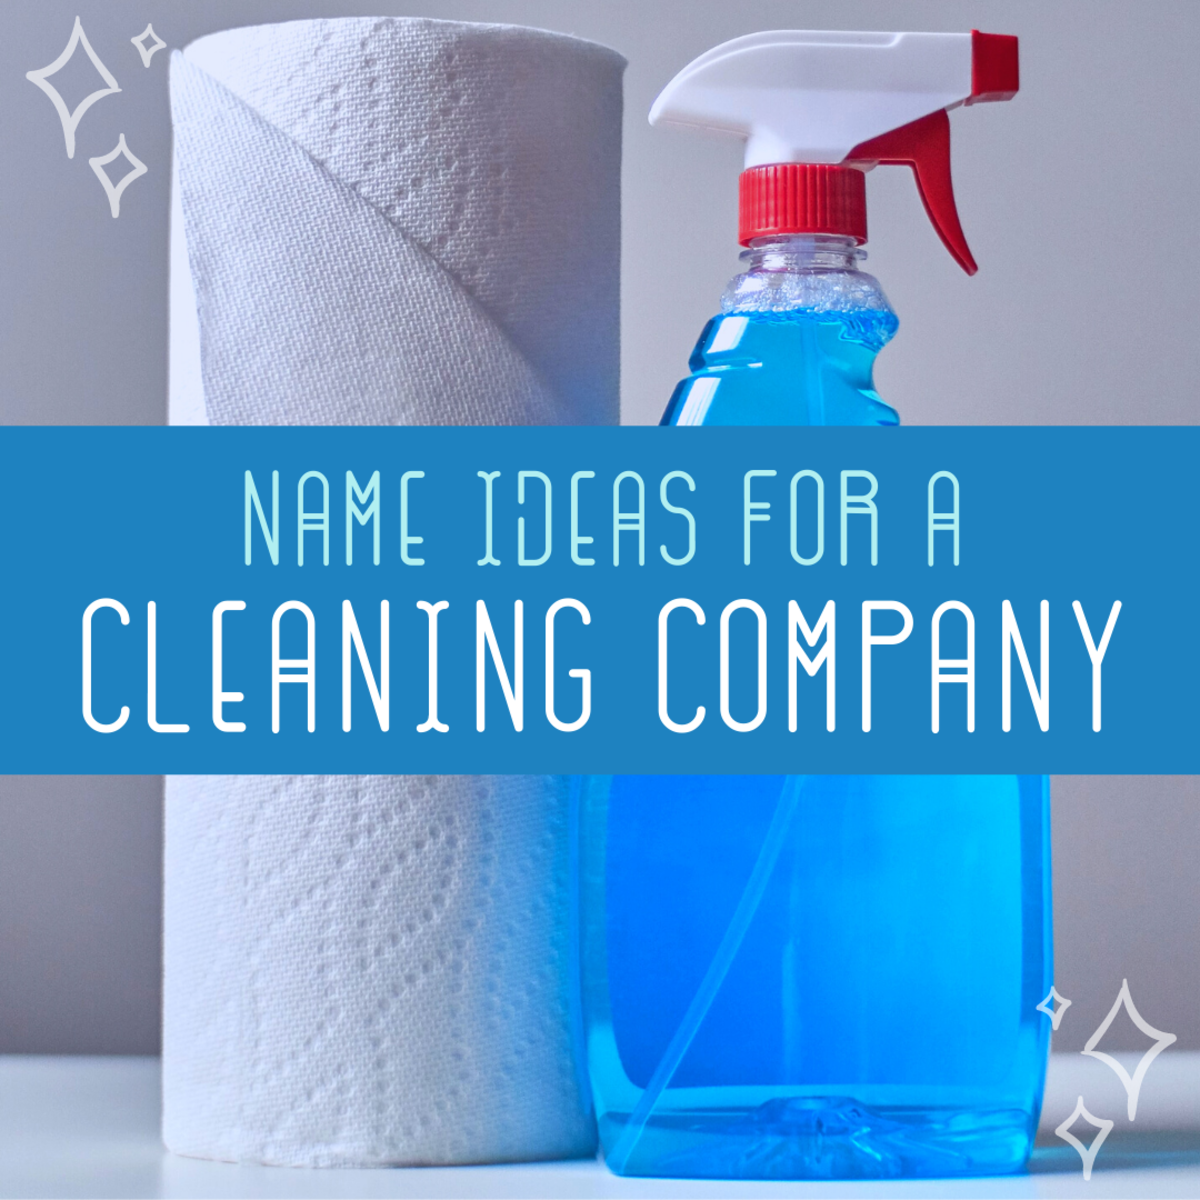 50 Squeaky Cleaning Business Names Toughnickel Money